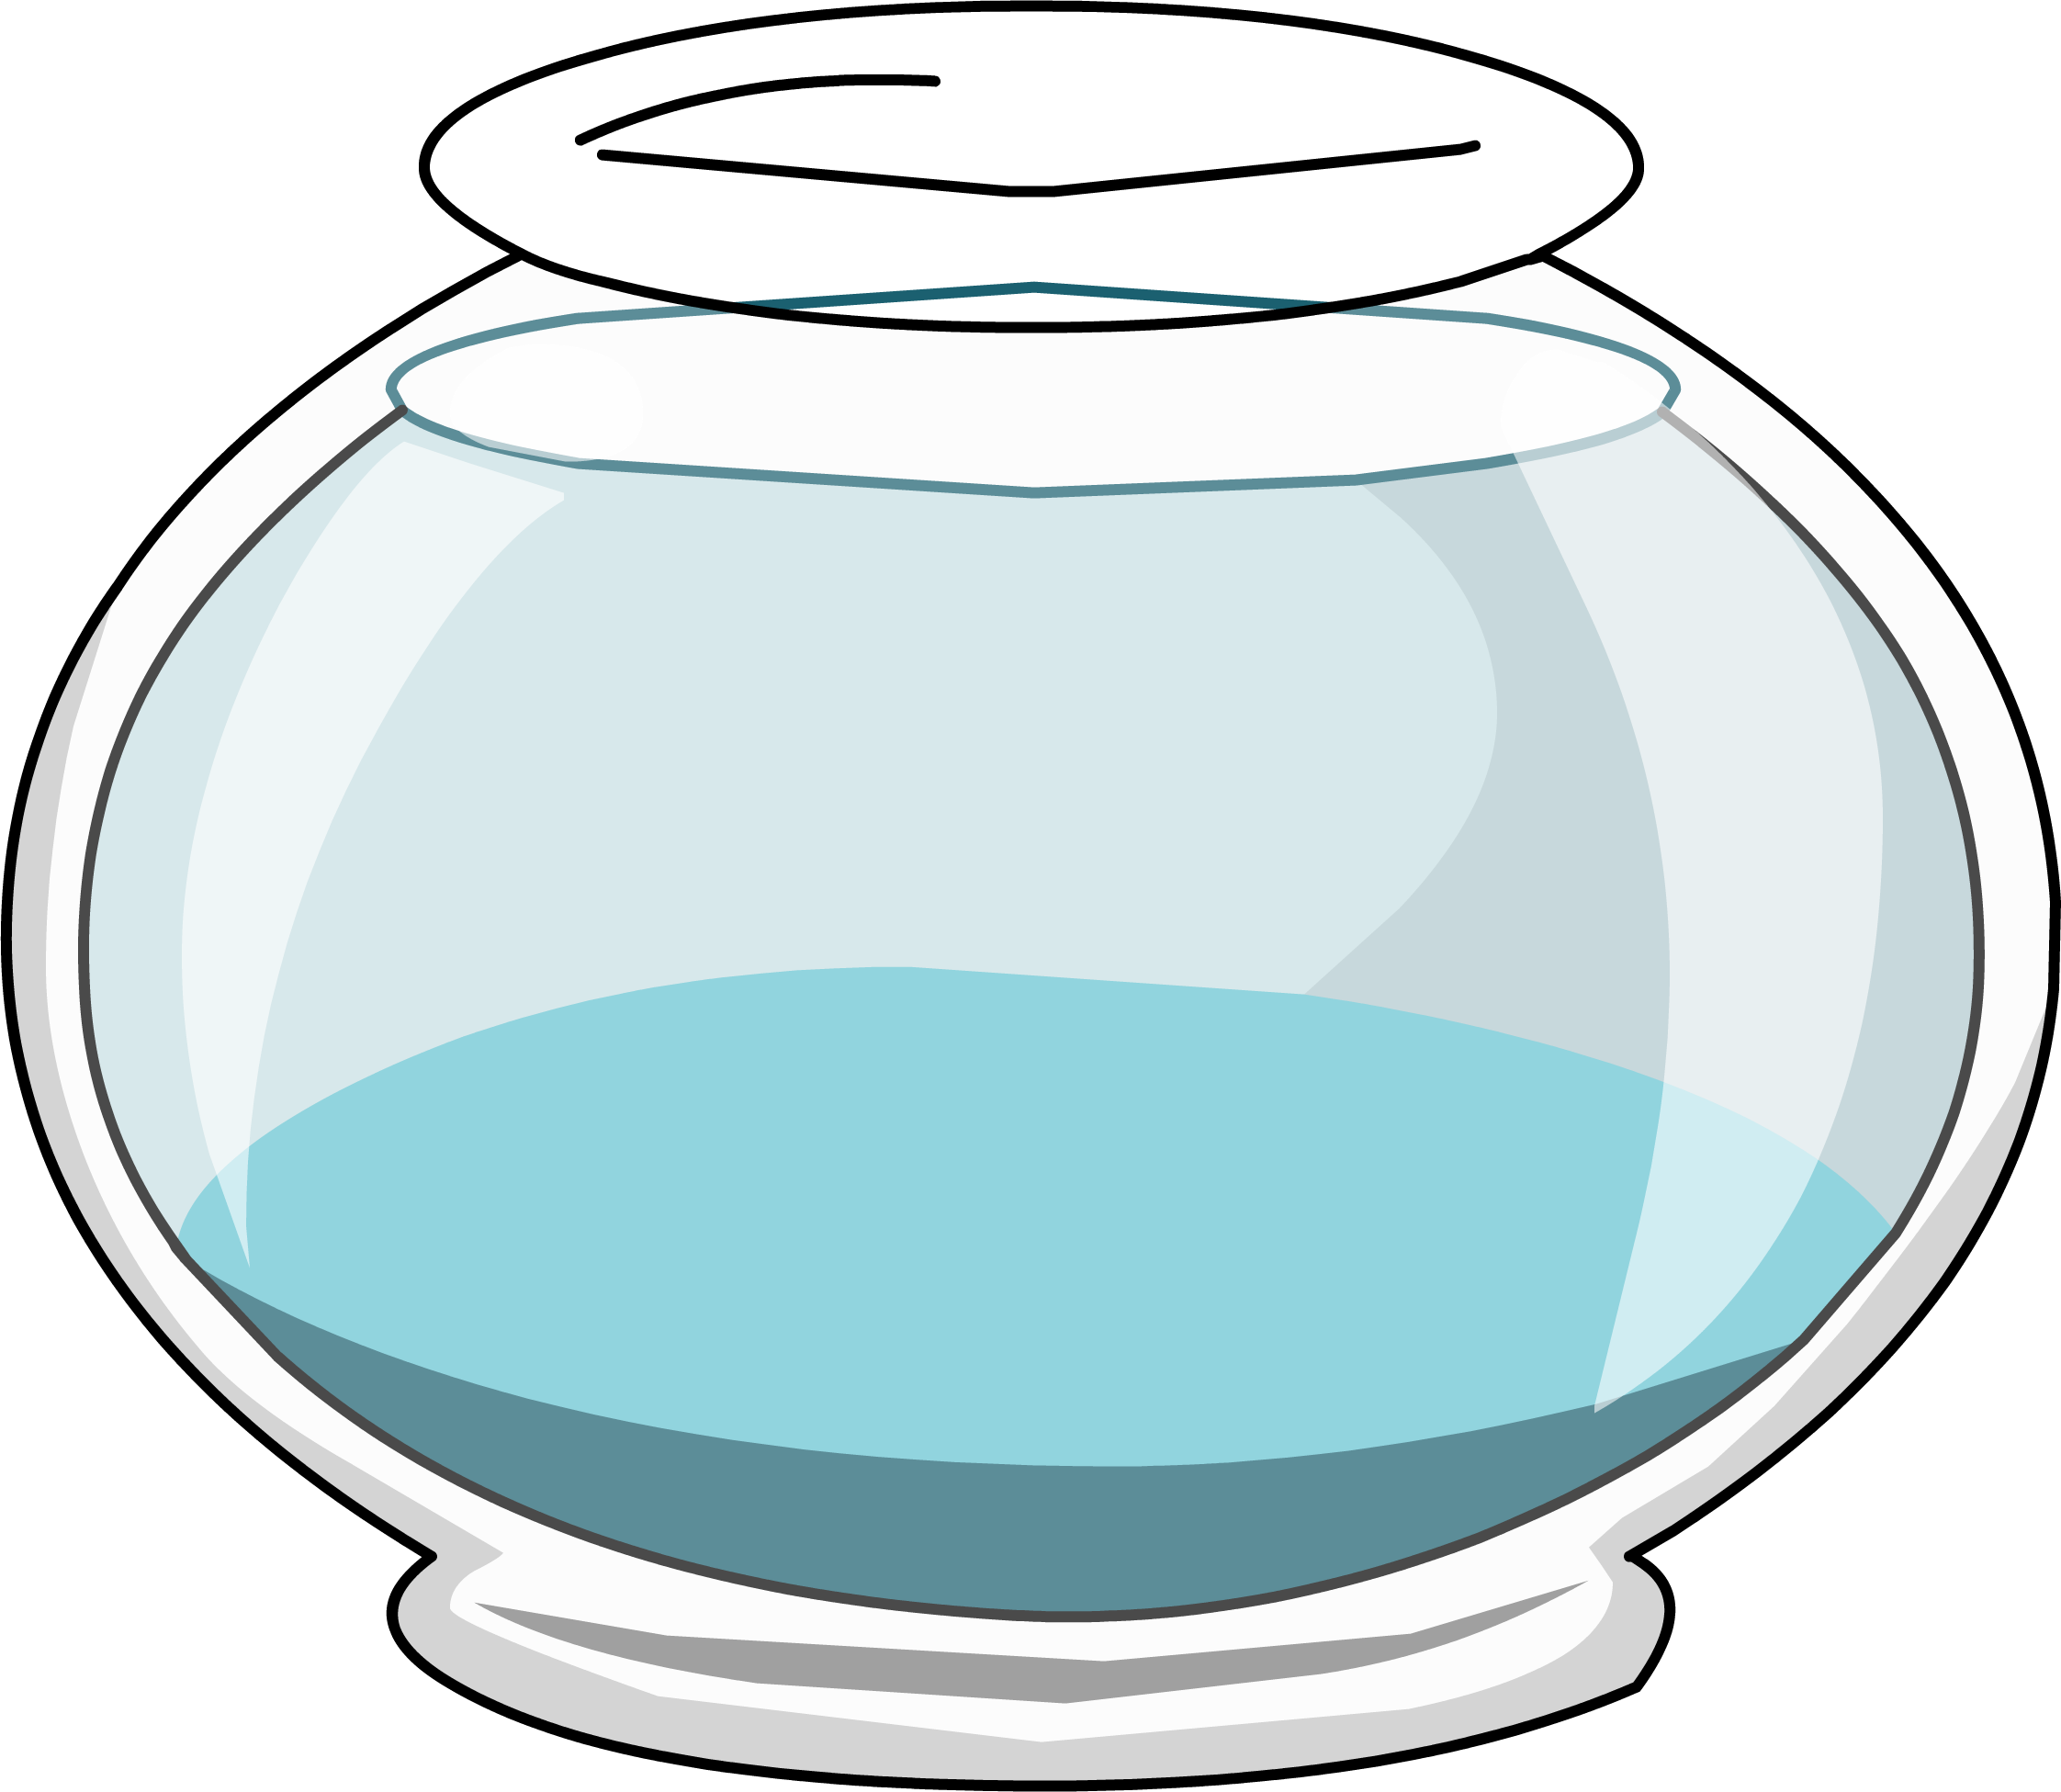 Empty fish tank clipart clipart images gallery for free download.